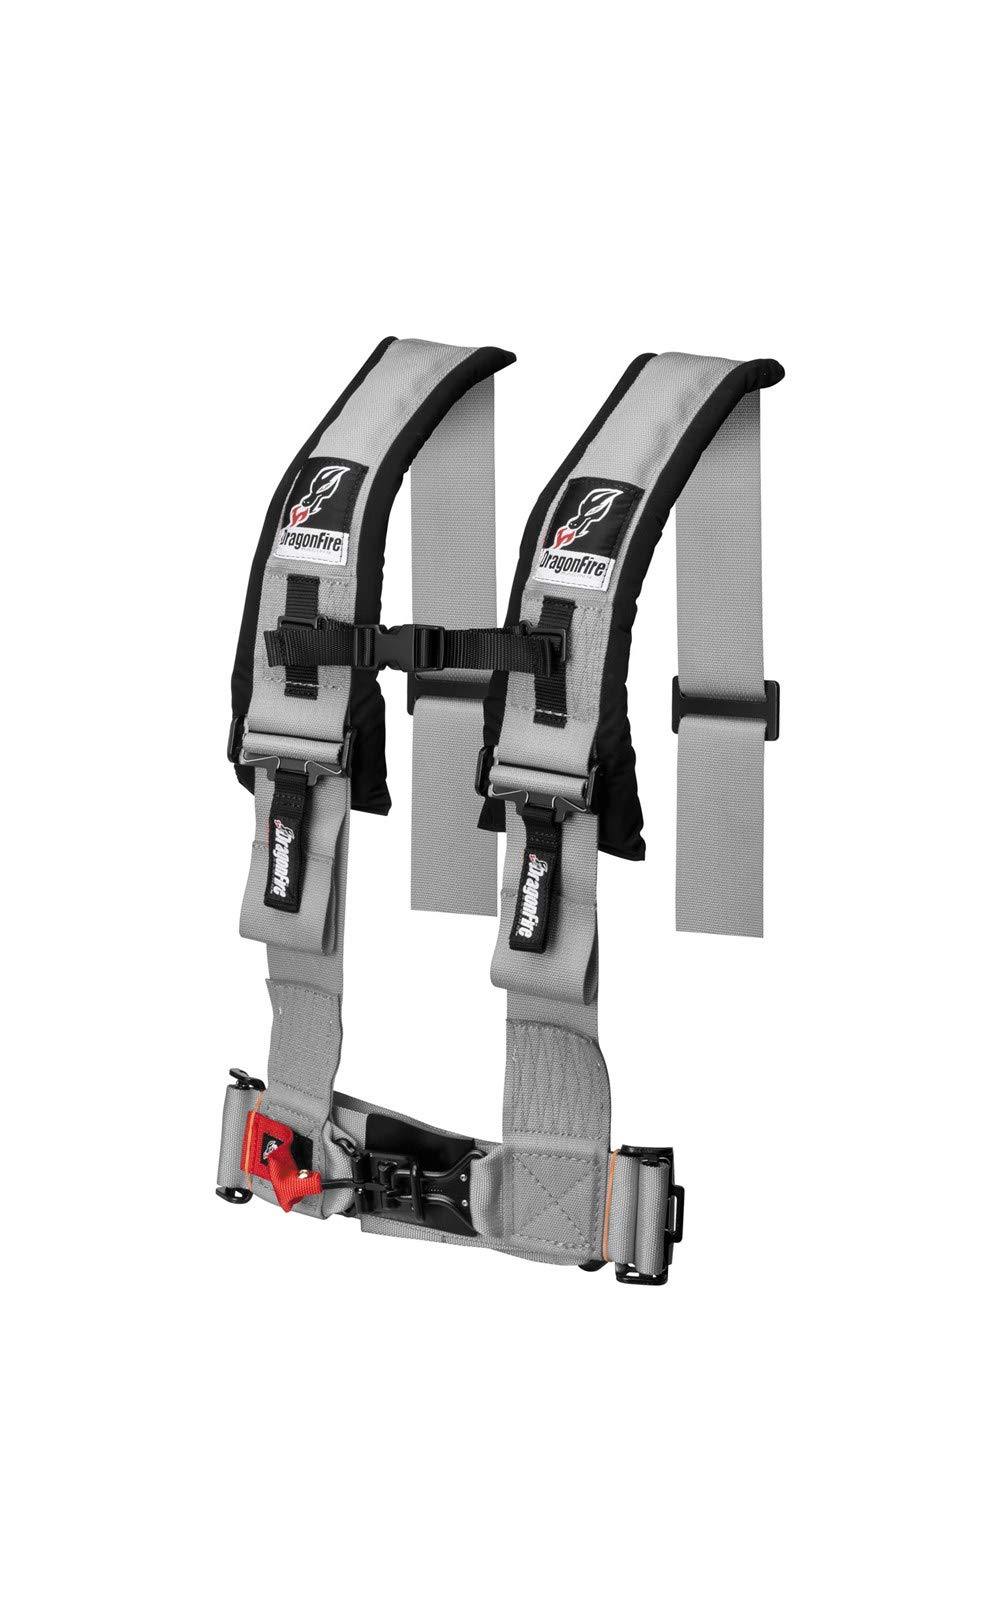 Arctic Cat/Textron WildCat Sport/Trail UTV Harness Mounting with 2 3'' Buckle Harnesses by Dragonfire Racing (Grey Harnesses)